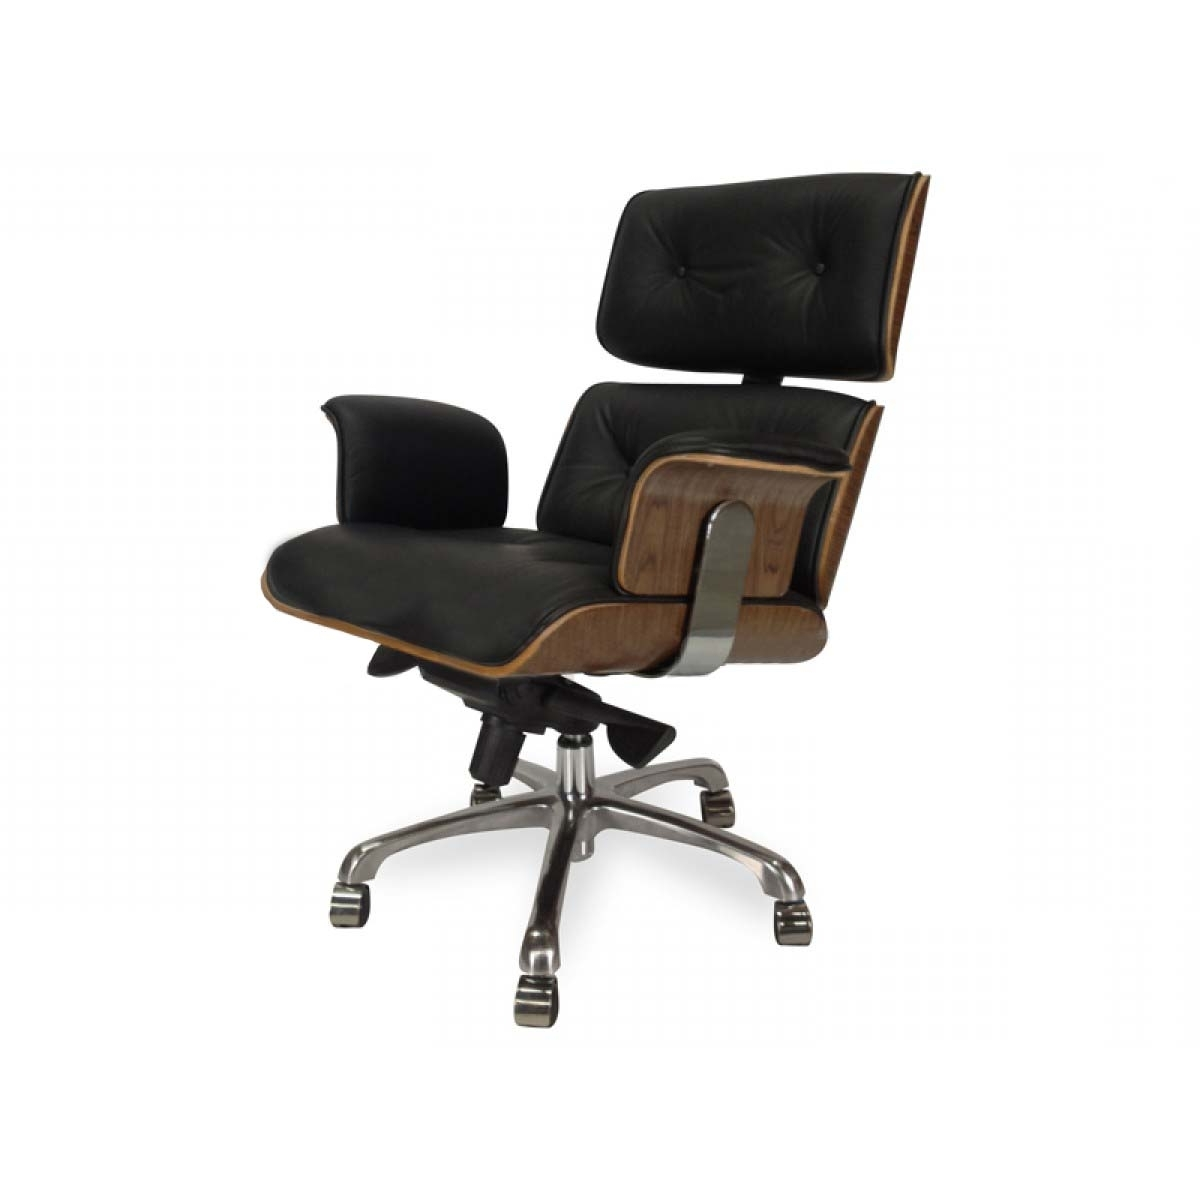 Furniture : Office Chairs Without Arms Office Chair Back Buy Throughout Famous Executive Office Chairs Without Arms (View 8 of 20)